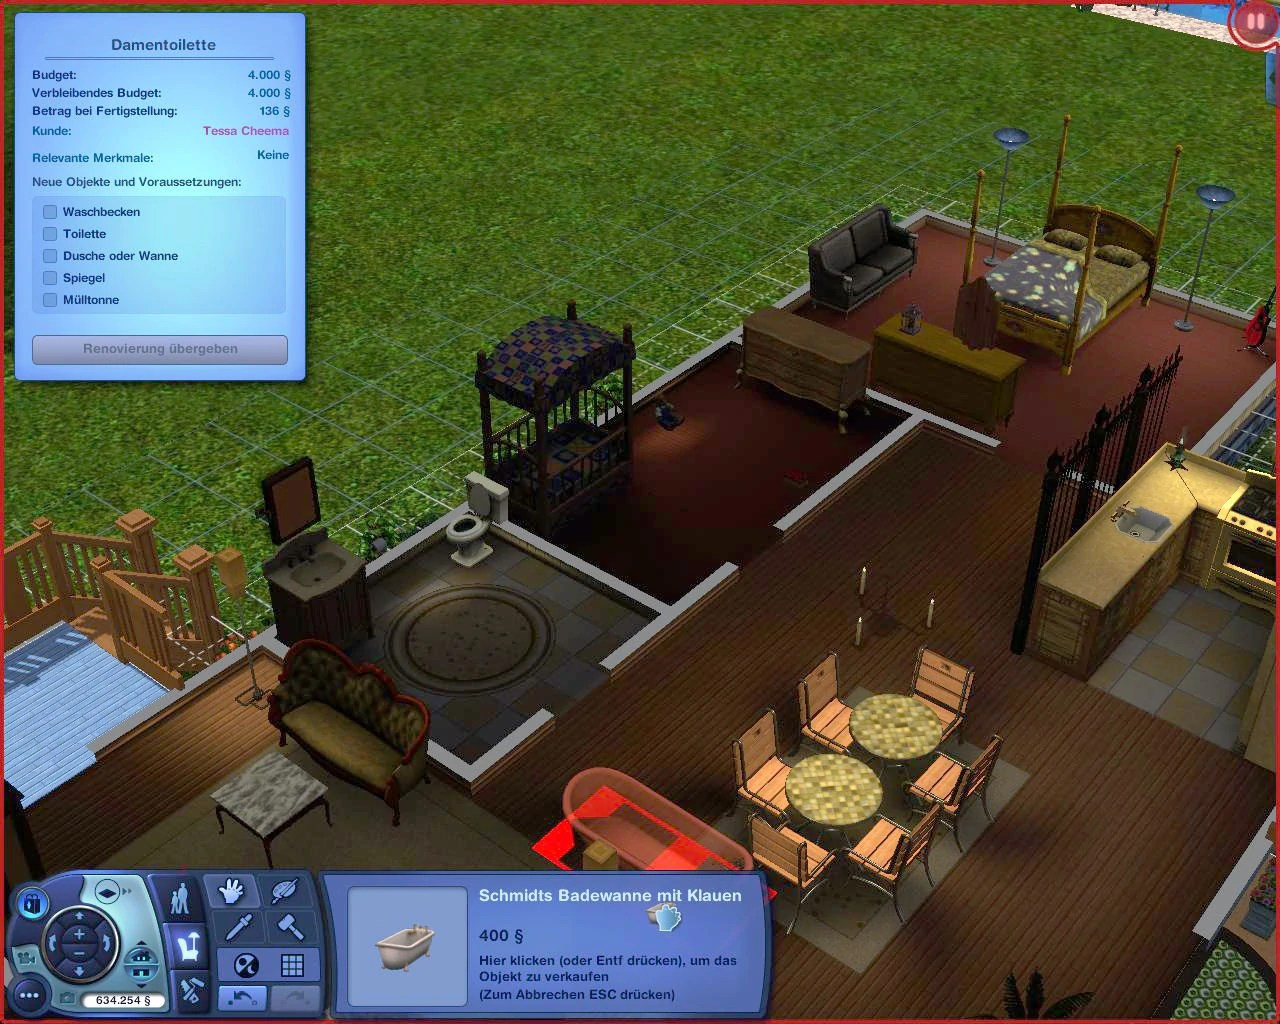 Badewanne Wiki Renovation Mode The Sims Wiki Fandom Powered By Wikia